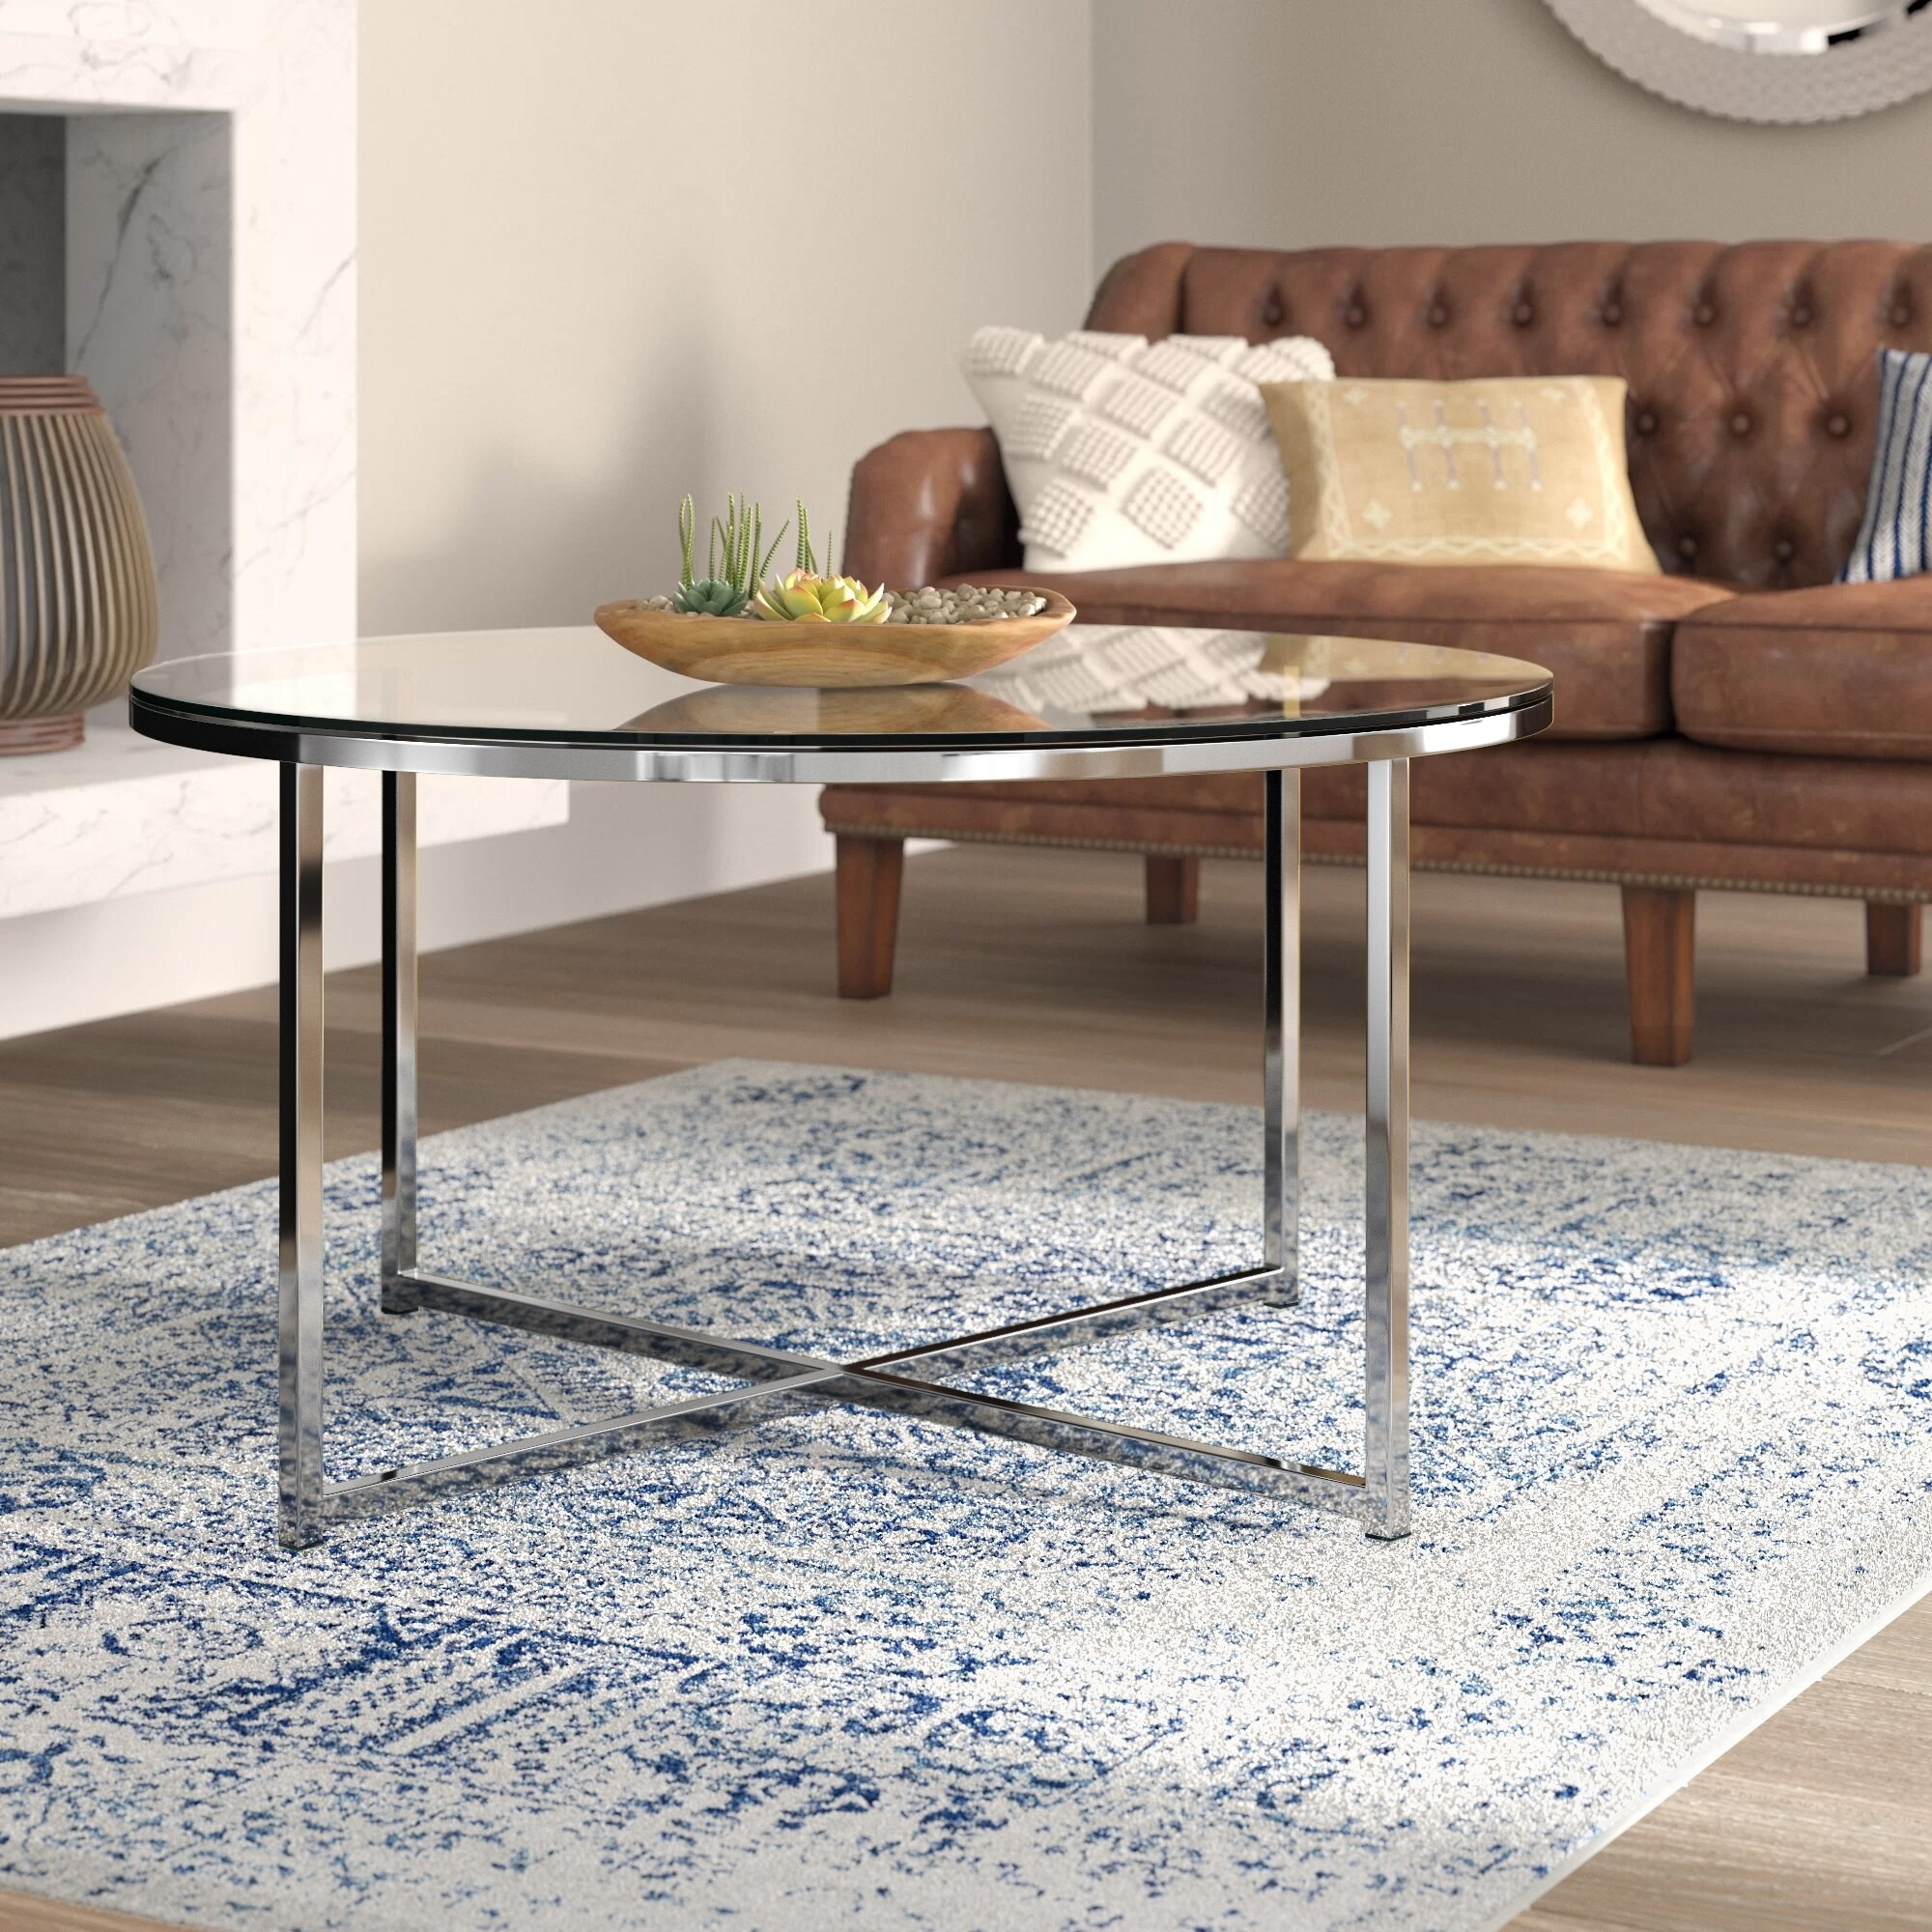 Round table with glass top and silver metal legs